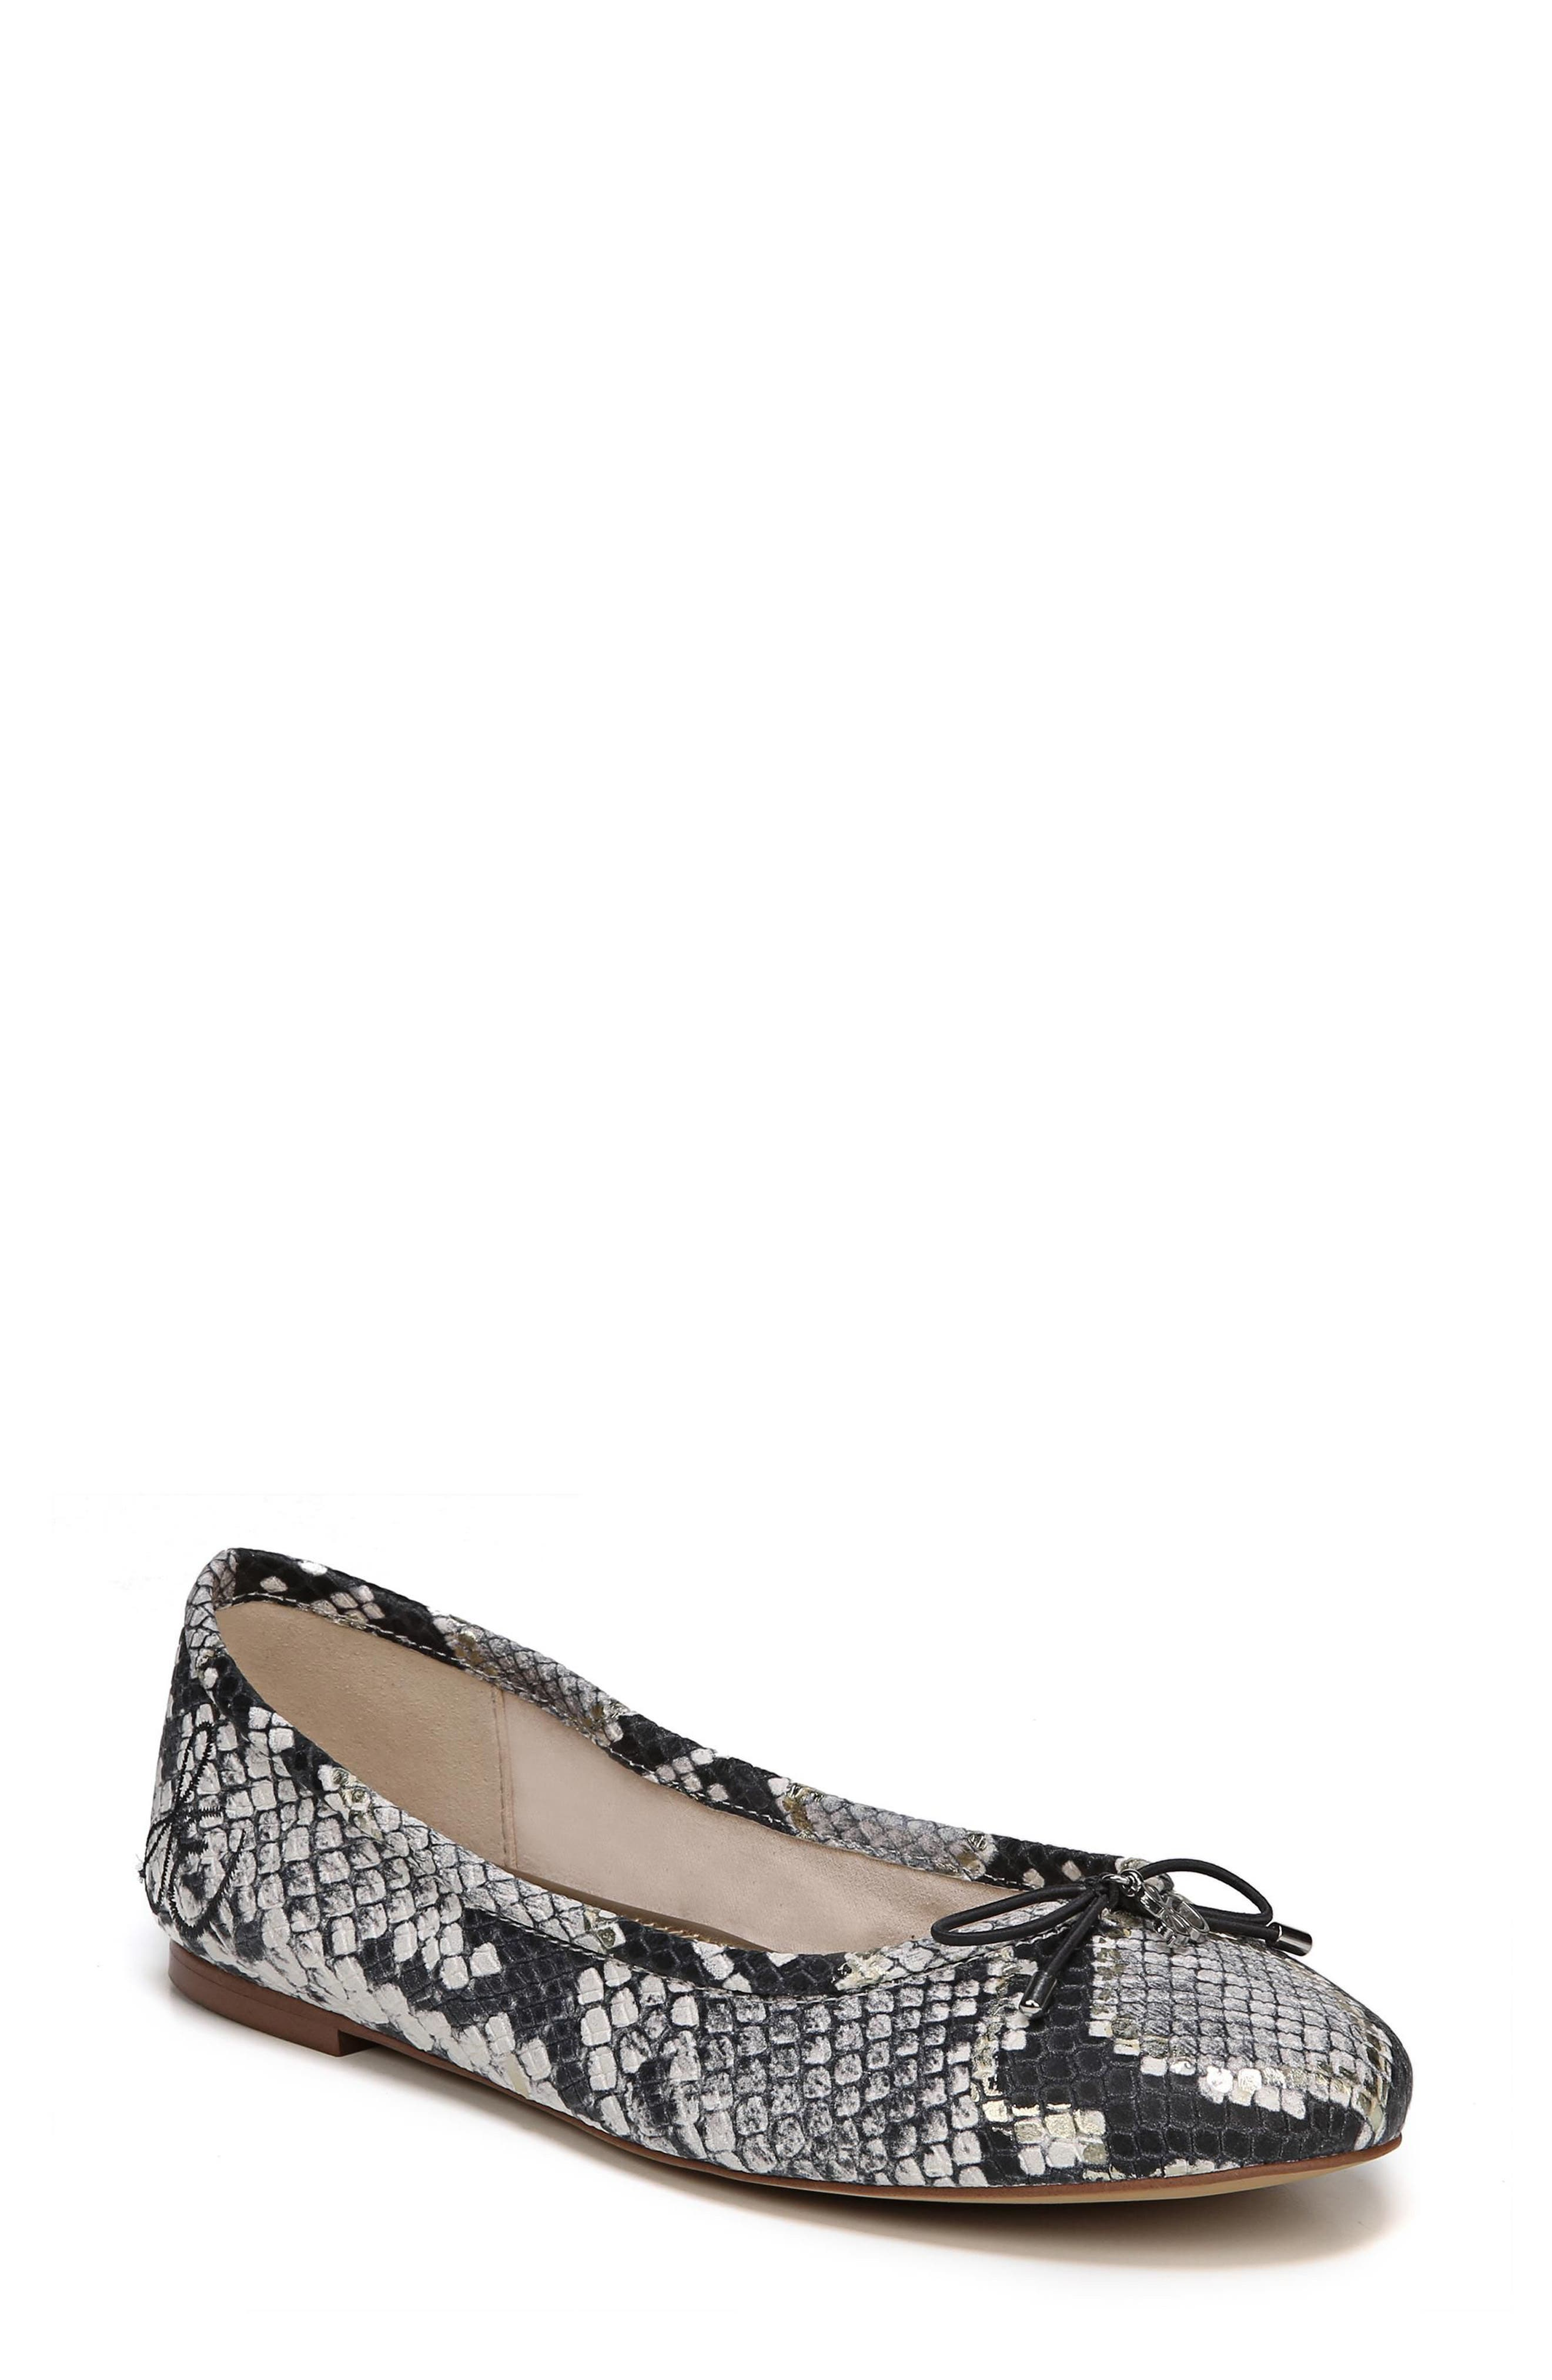 Felicia Flat,                         Main,                         color, Grey Snake Print Leather